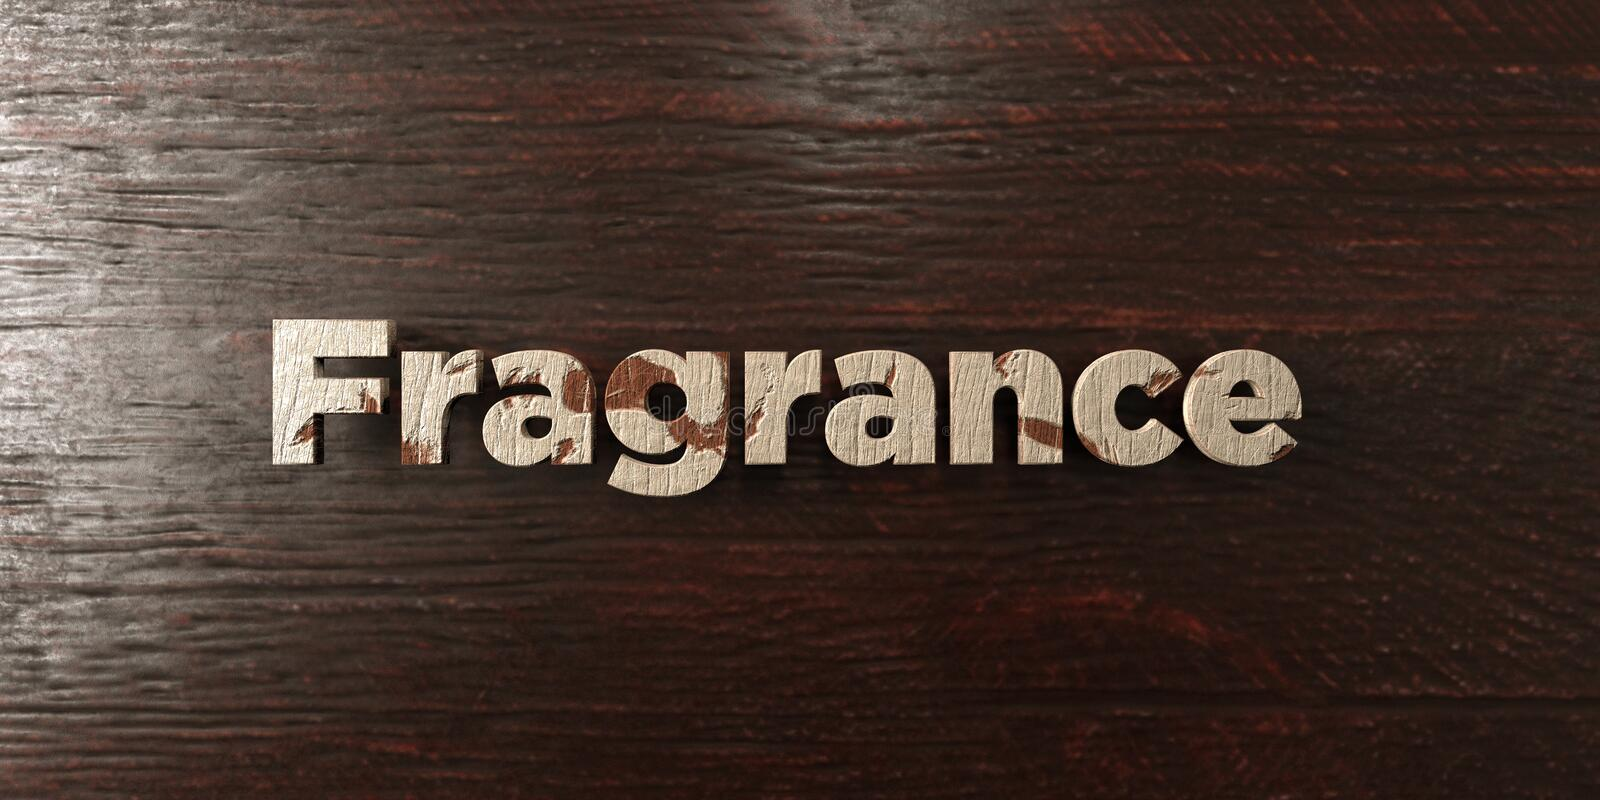 Fragrance - grungy wooden headline on Maple - 3D rendered royalty free stock image royalty free illustration